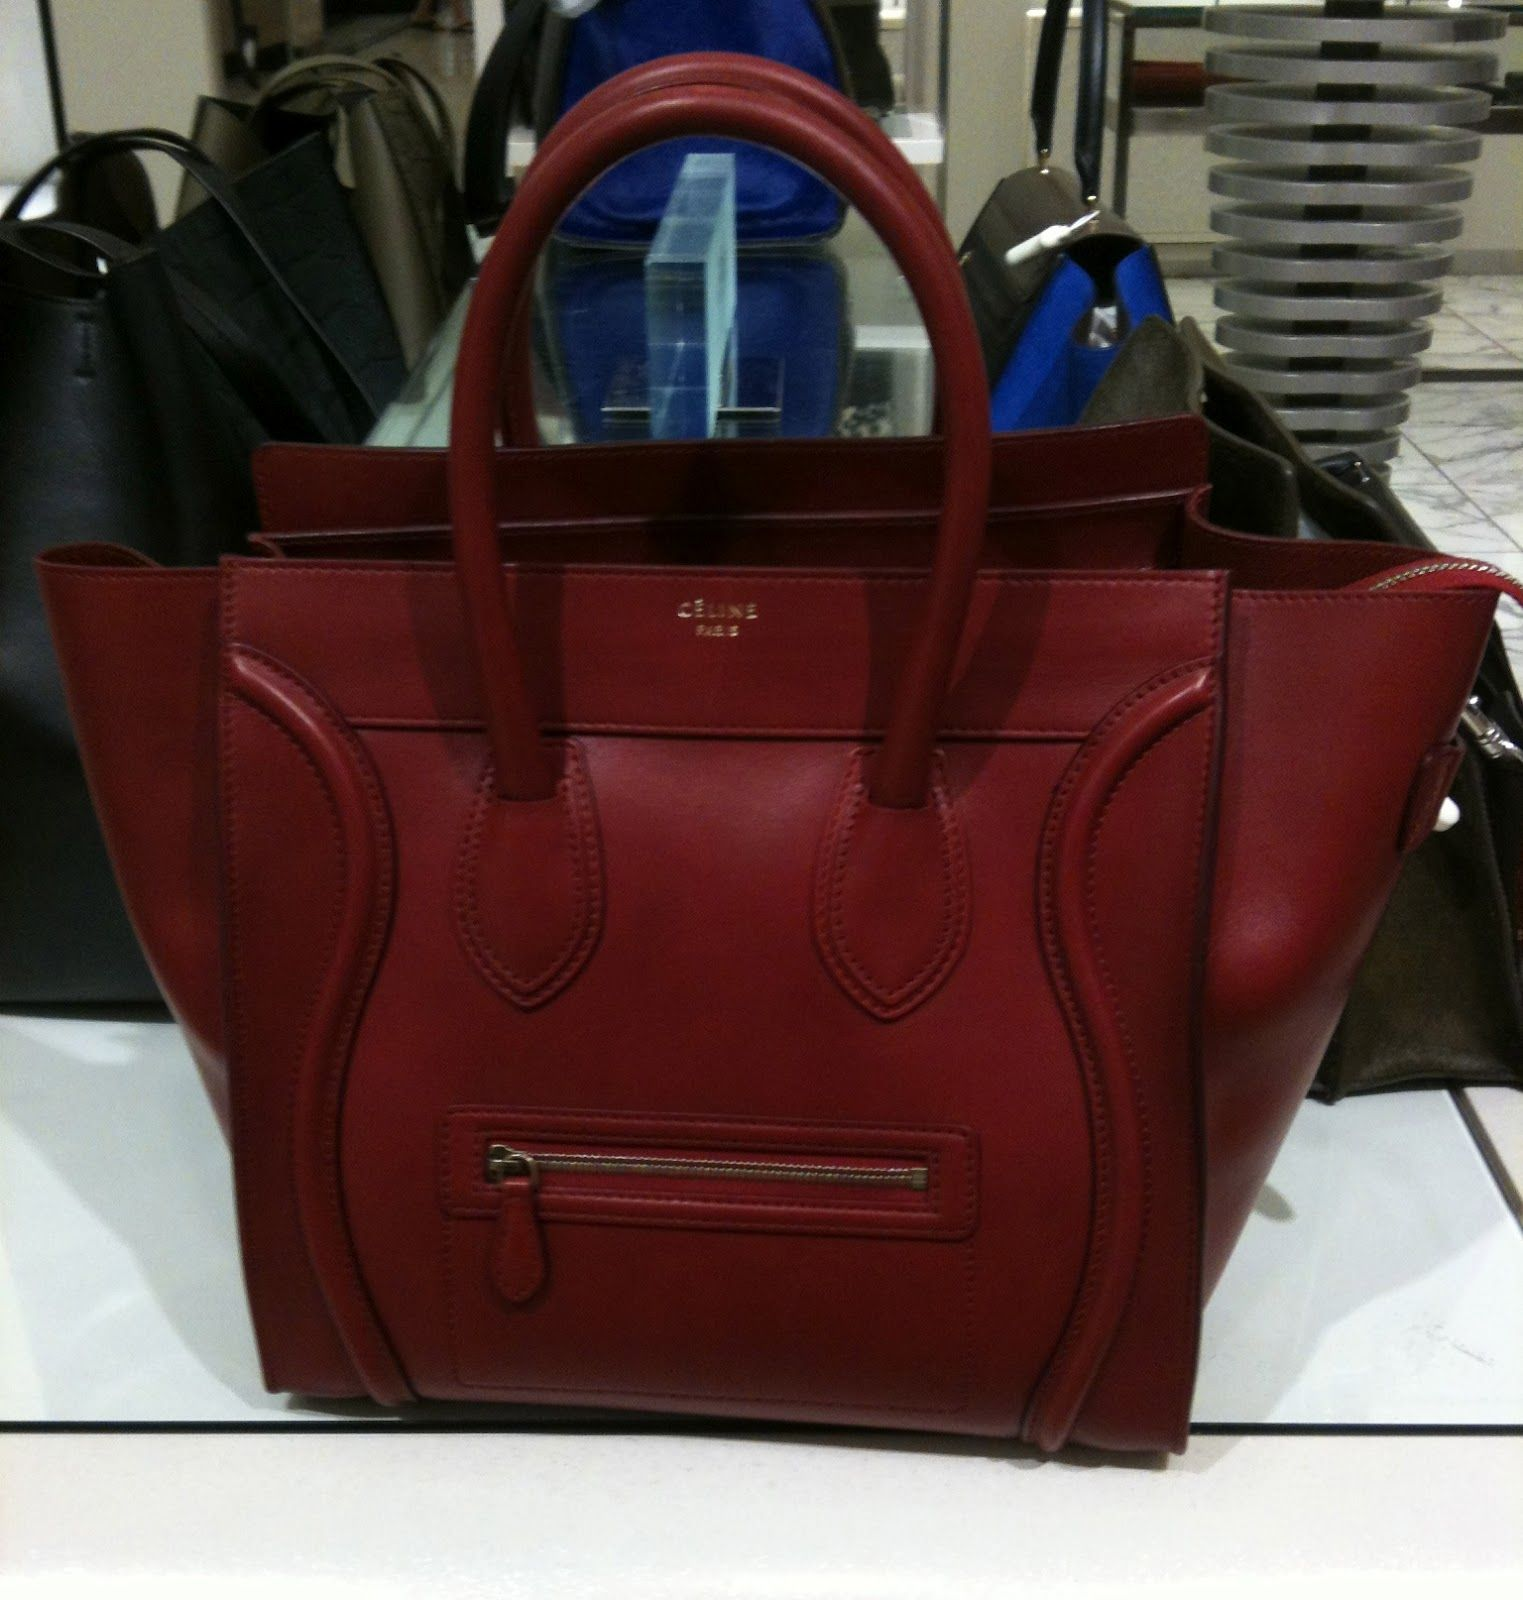 abba1c601 Celine Handbags Nordstrom | at nordstrom one day this bag will be mine the celine  luggage tote bag .